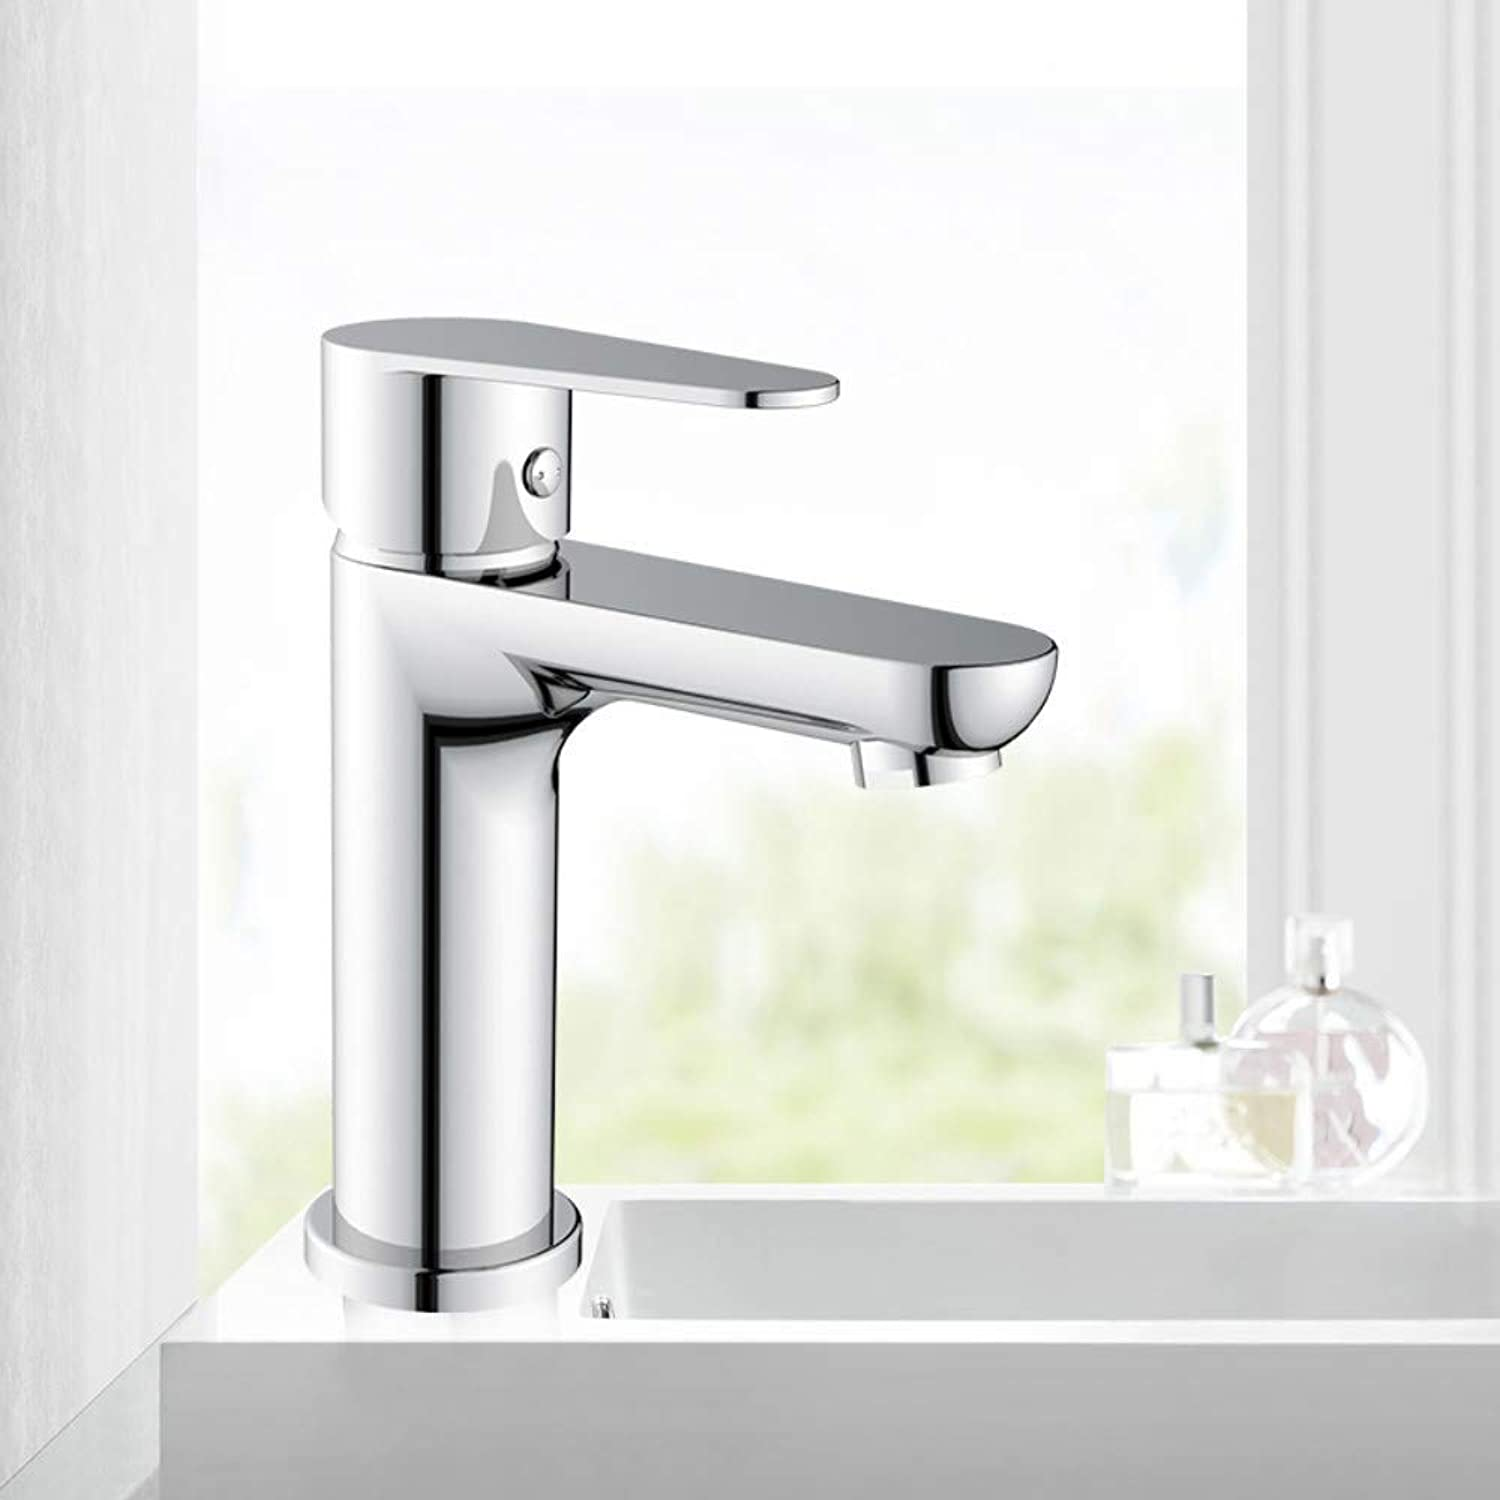 Water Tap Basin Faucet Single Hole Kitchen Bathroom Bathroom Washbasin Washbasin Washbasin Faucet